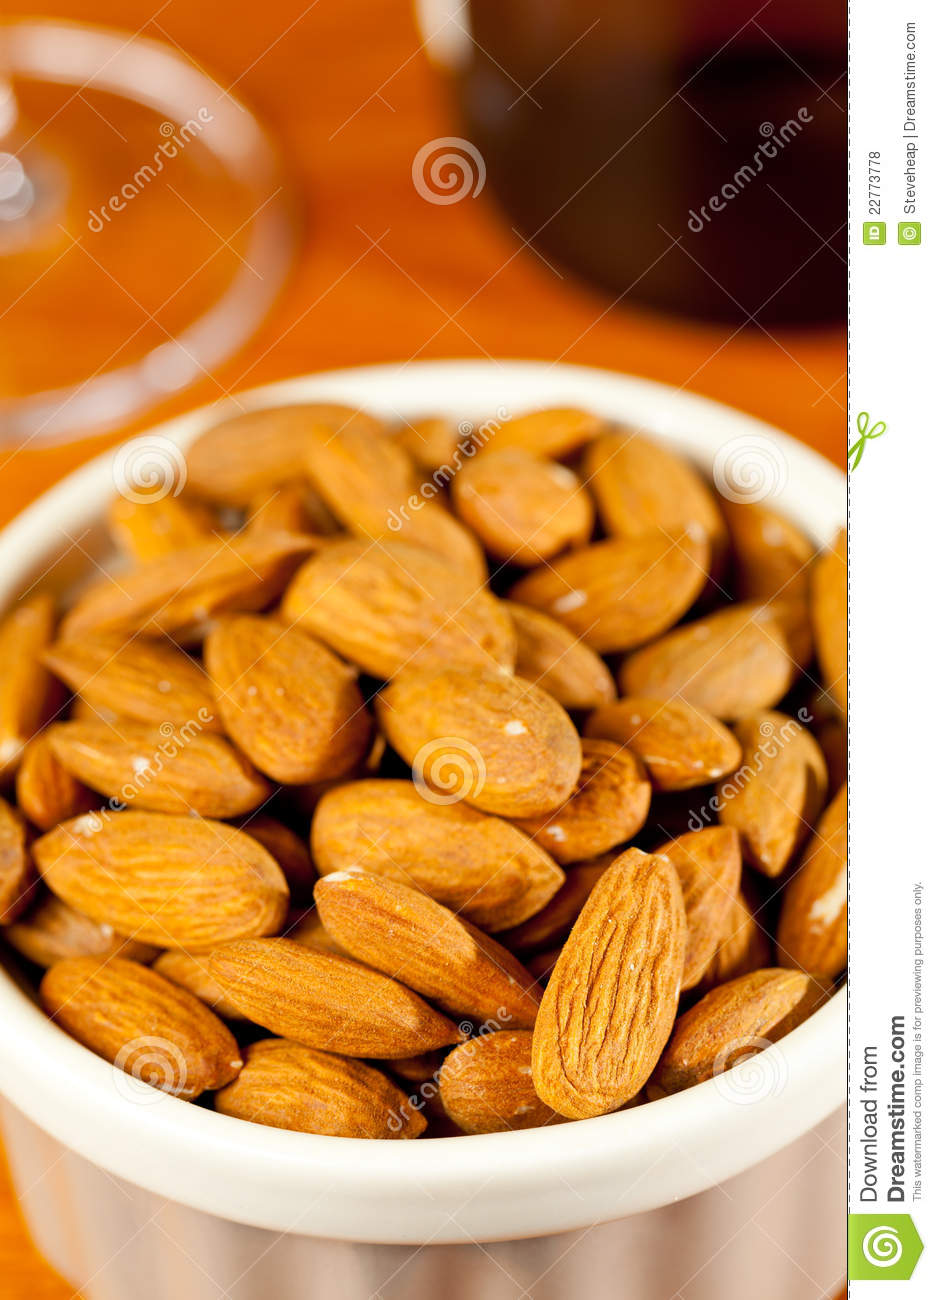 Raw Organic Almonds In Bowl Stock Photo - Image of many ...